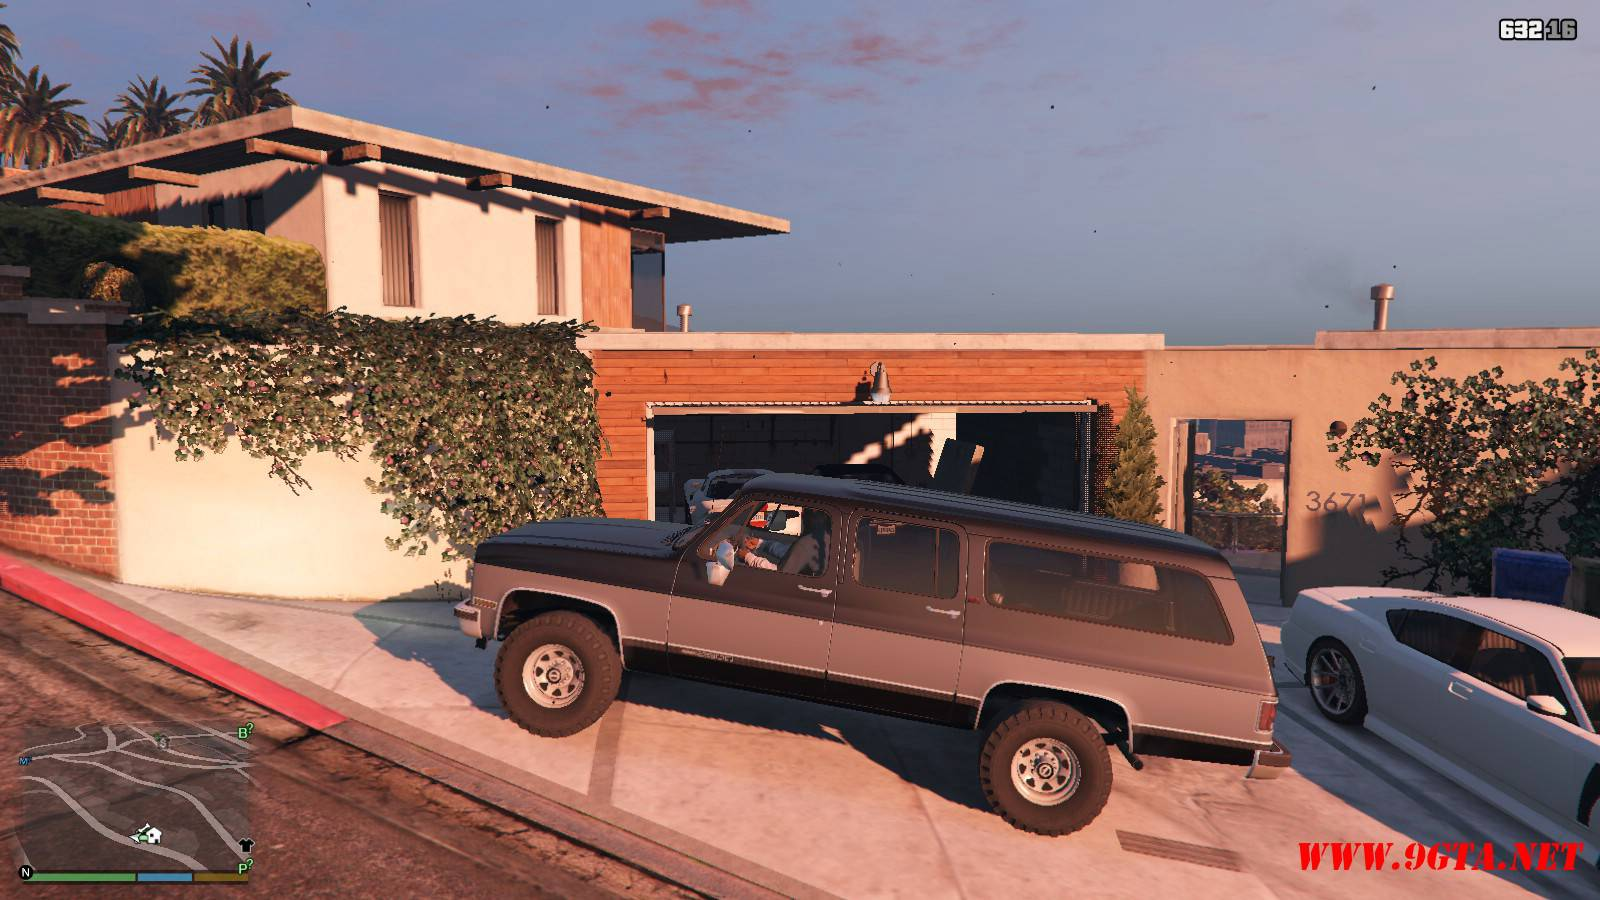 1989 GMC Suburban Mod For GTA 5 (2)